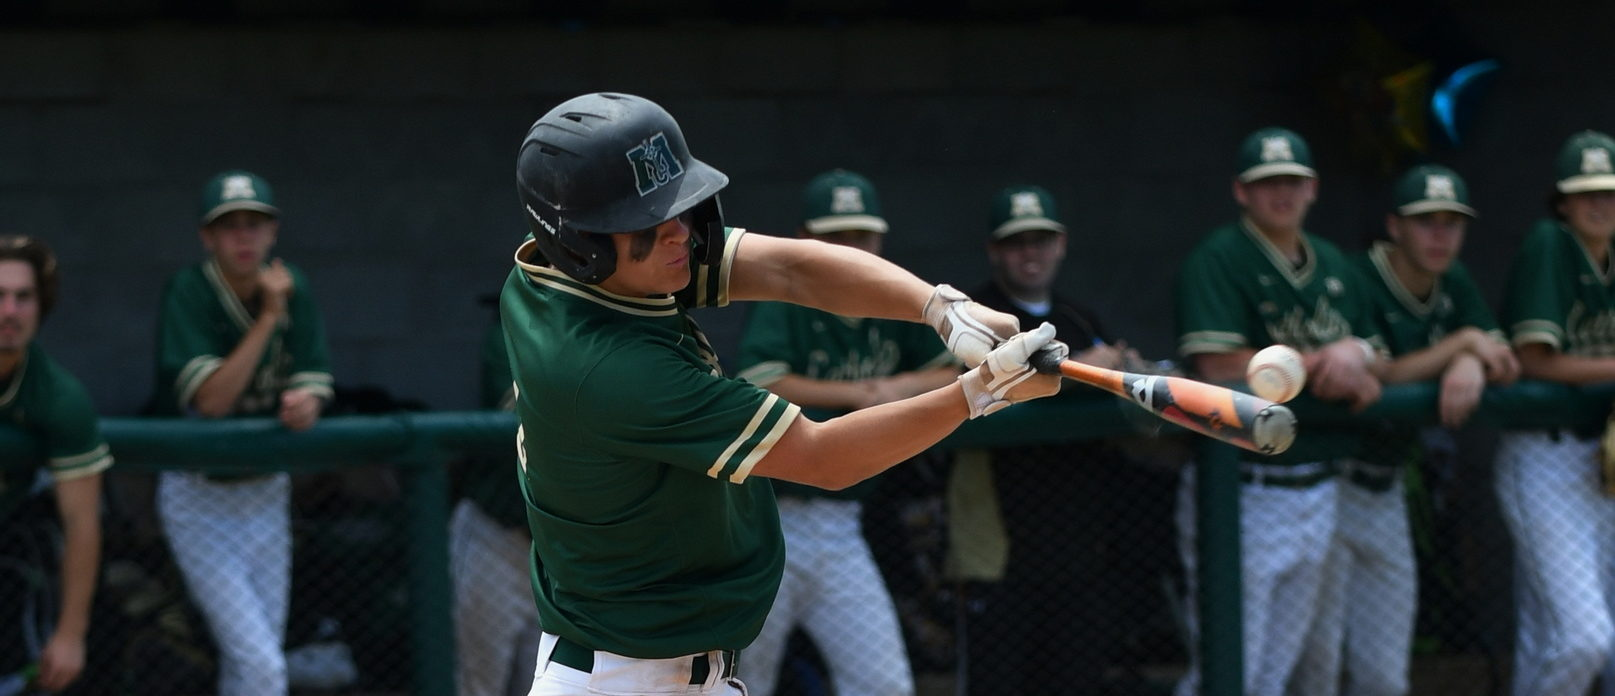 Muskegon Catholic baseball squad outscores two opponents 27-0 to win its ninth straight district championship